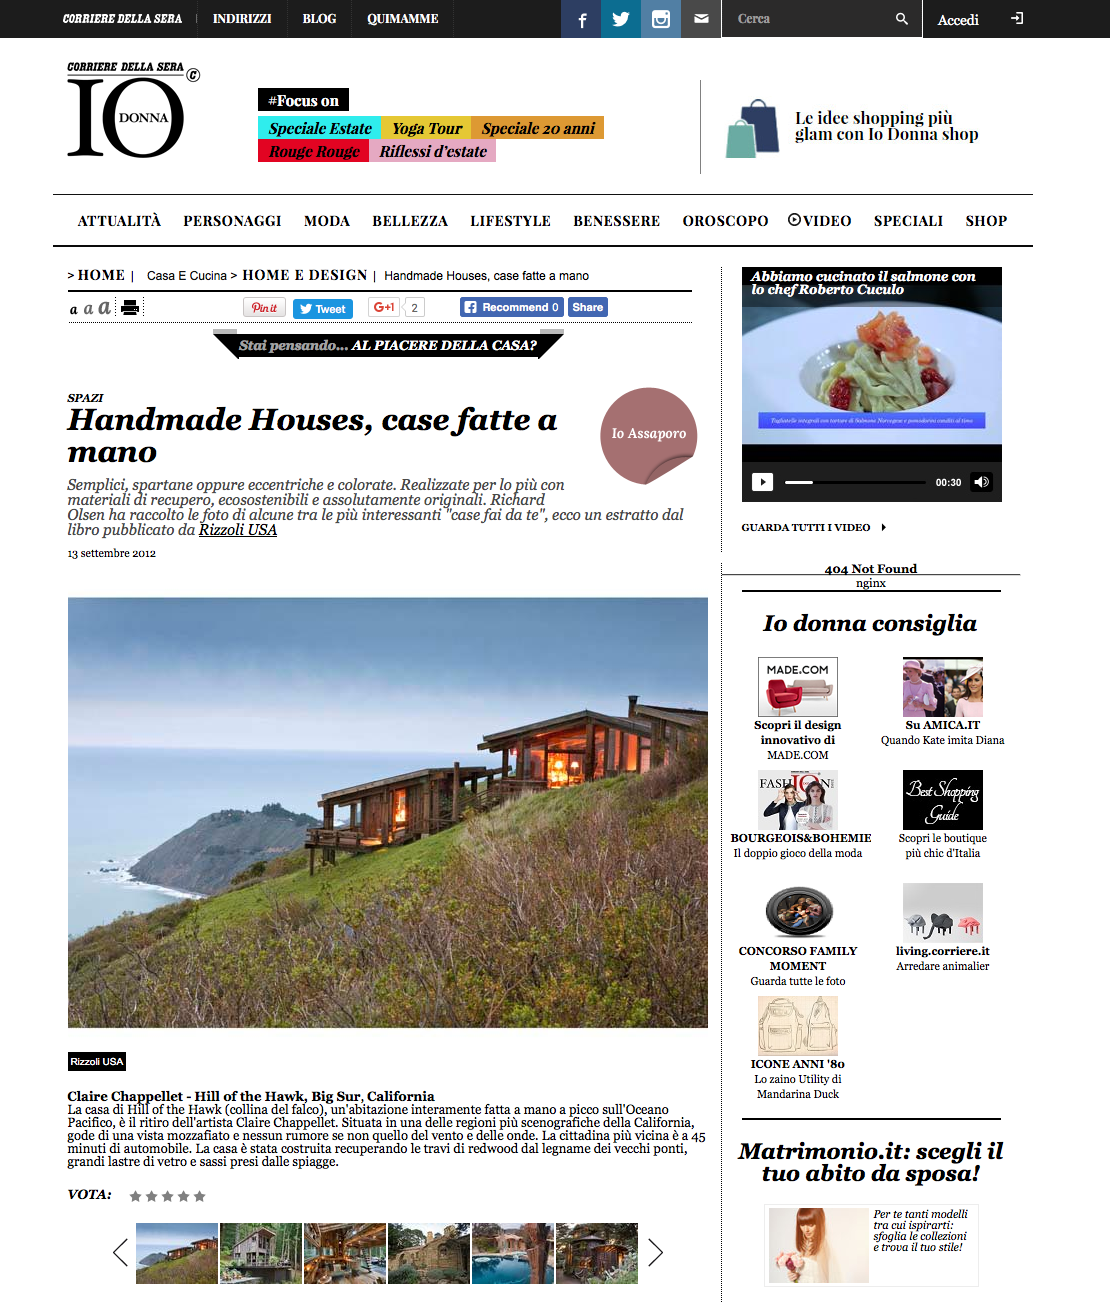 Handmade Houses   in   IO Donna, Corriere della Sera   (Italy), September 13, 2012.